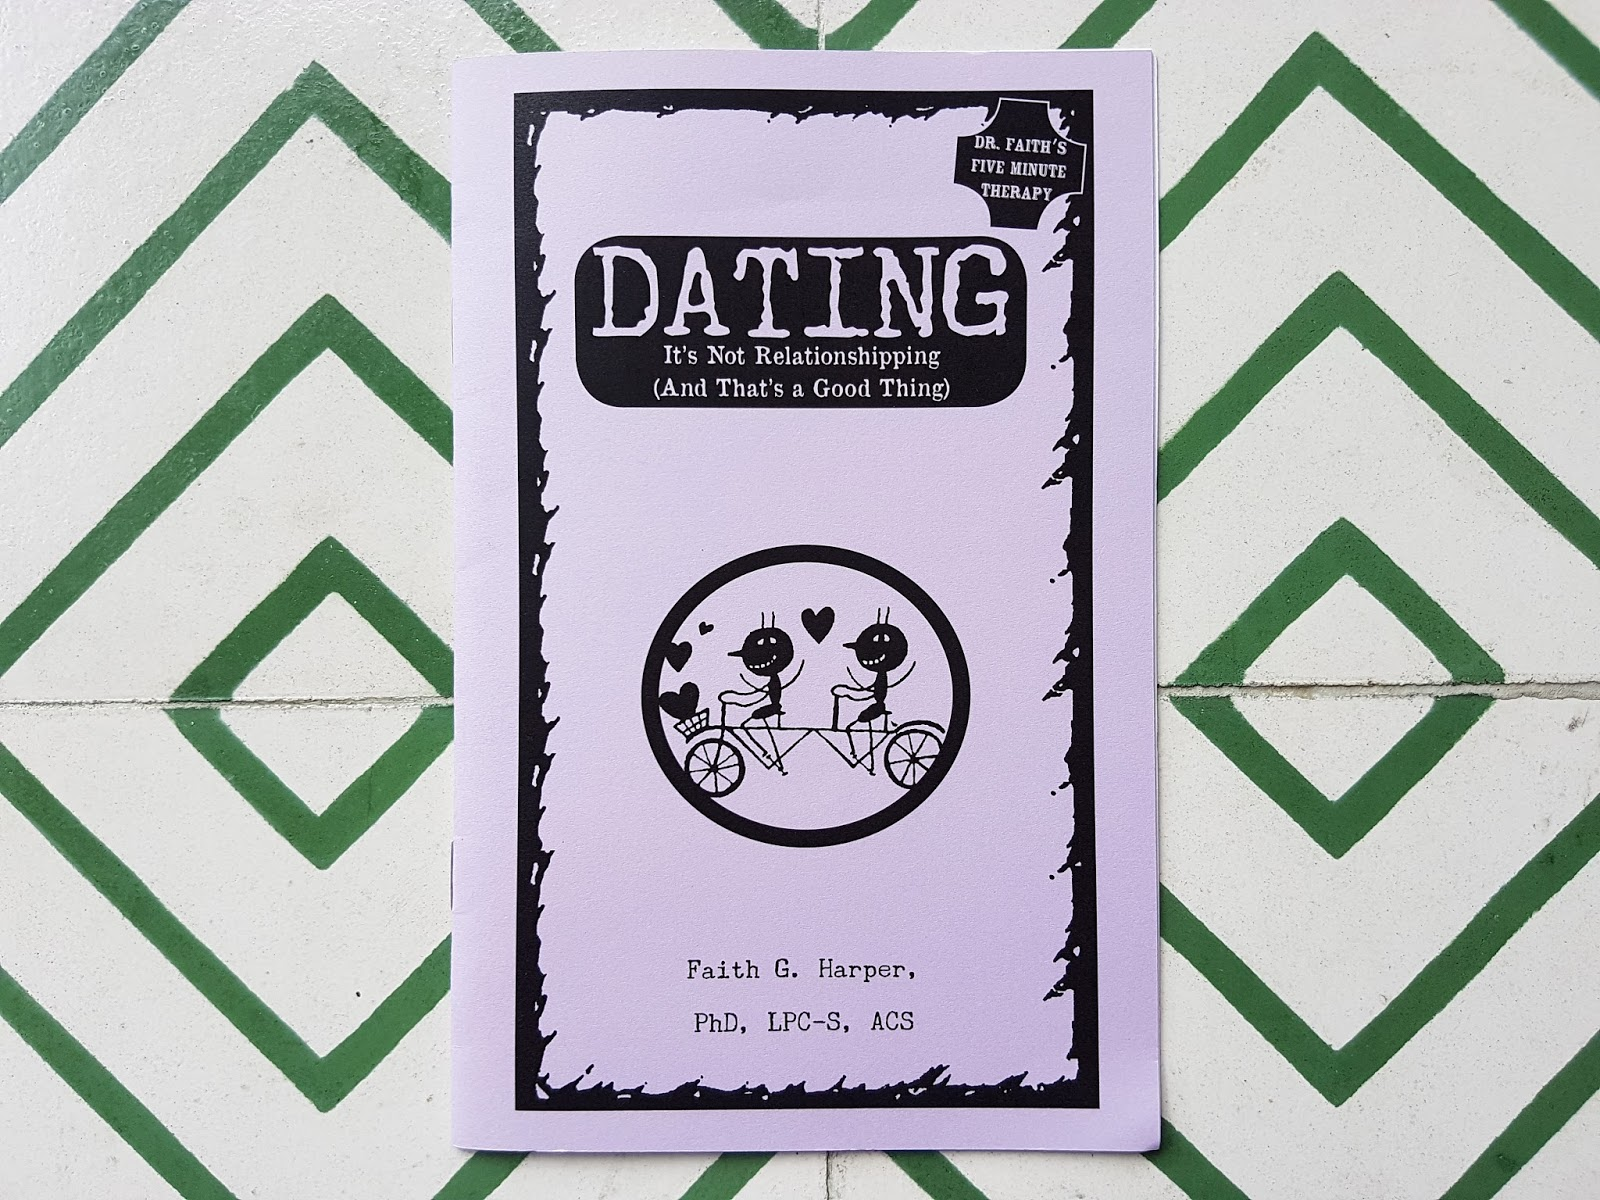 8 minute dating reviews Dating you / hating you (rt book reviews (top pick) on dating you / hating you) start reading dating you / hating you on your kindle in under a minute.